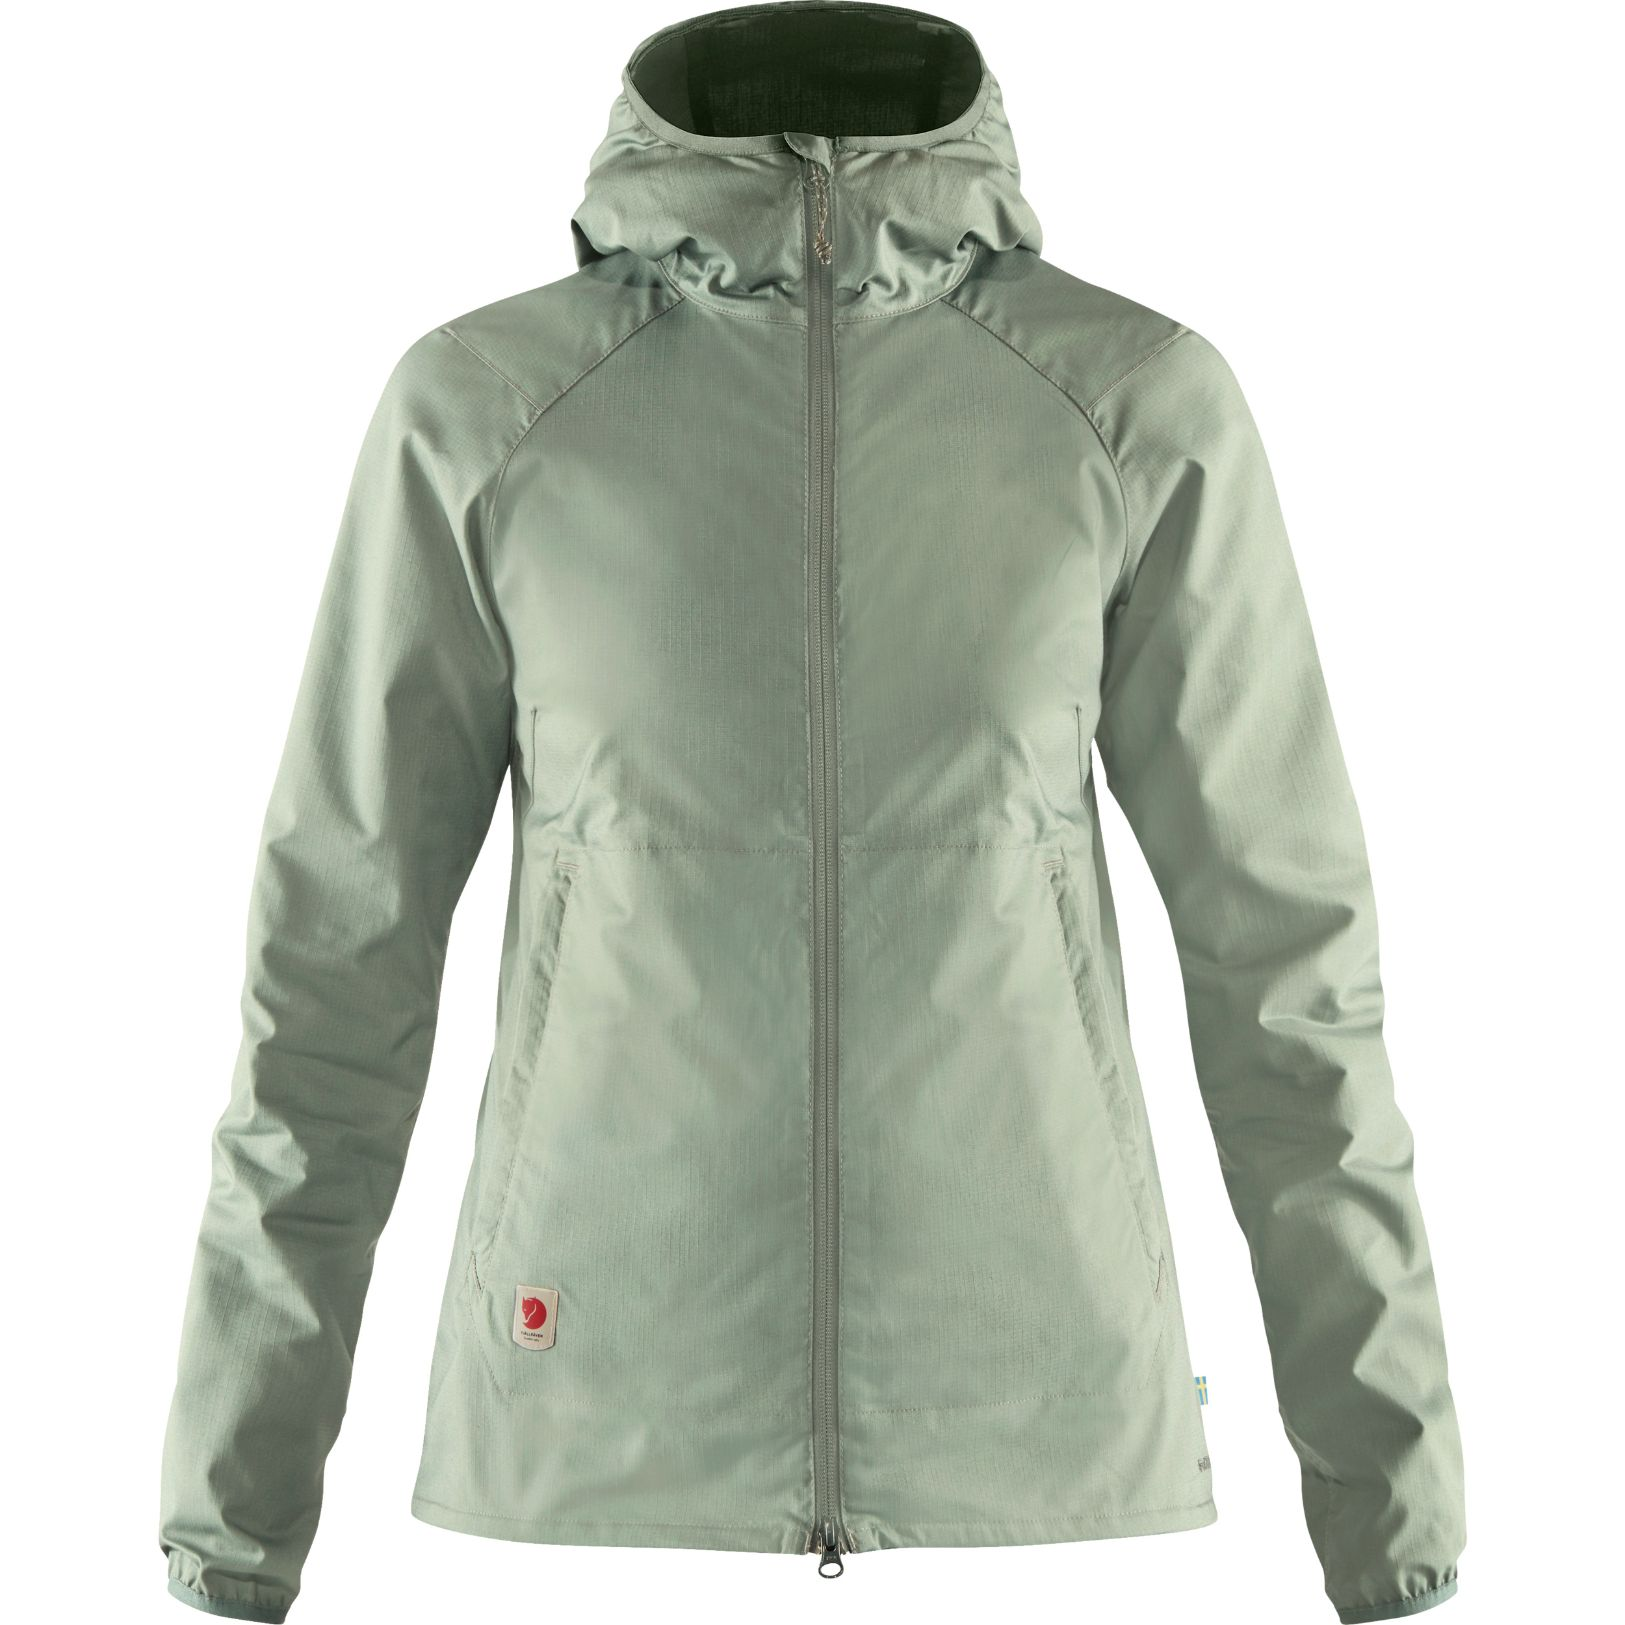 Fjällräven-High Coast Shade Jacket - Women's